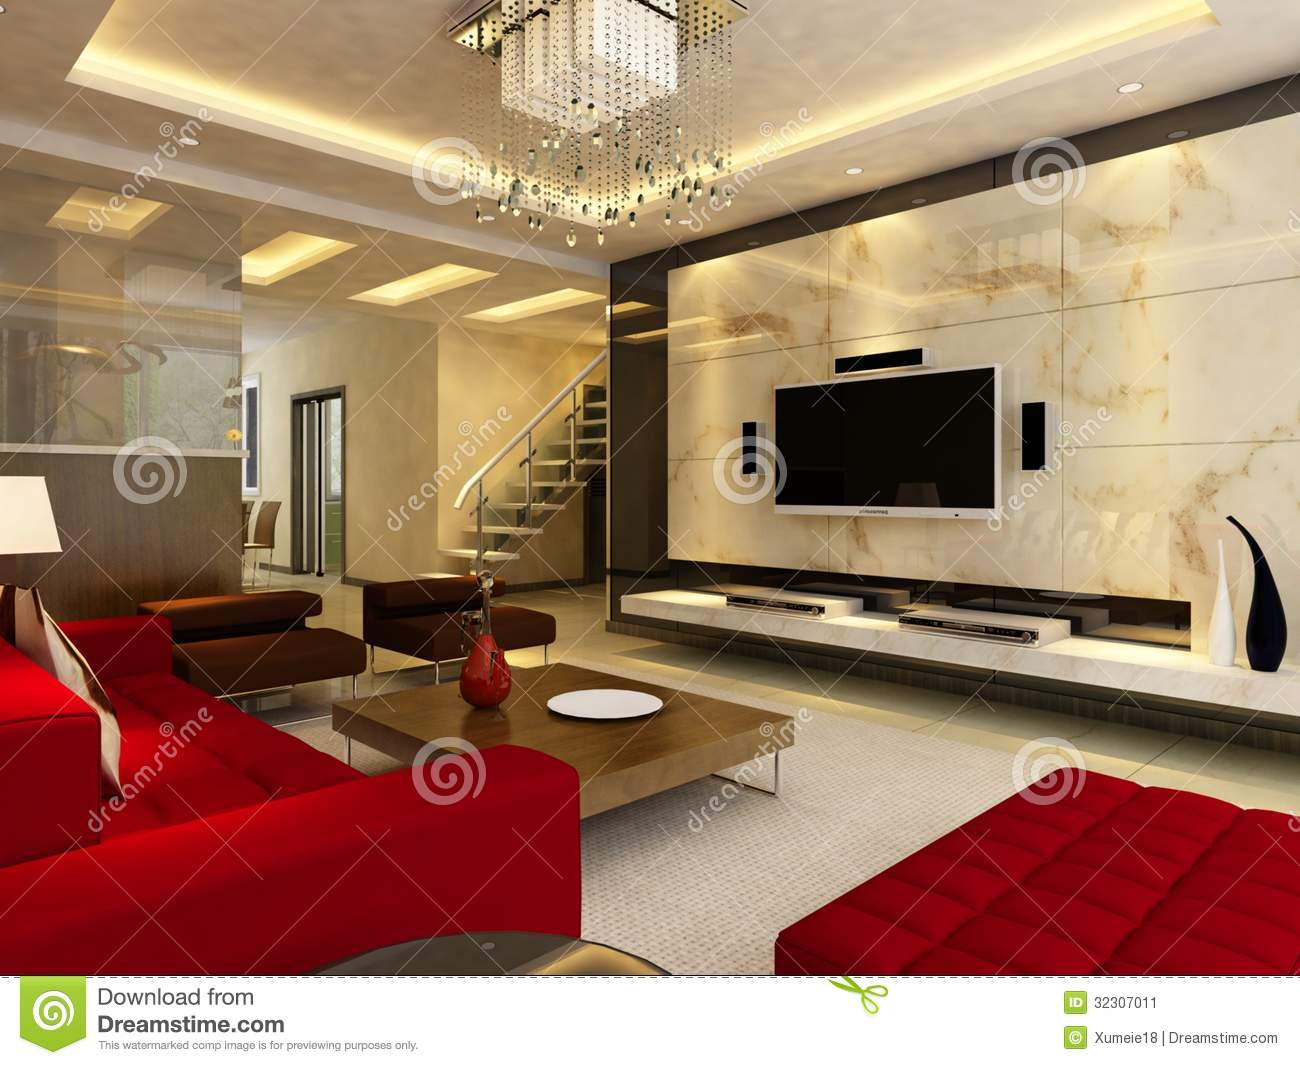 Home Interior 3d Rendering Stock Image Image 32307011